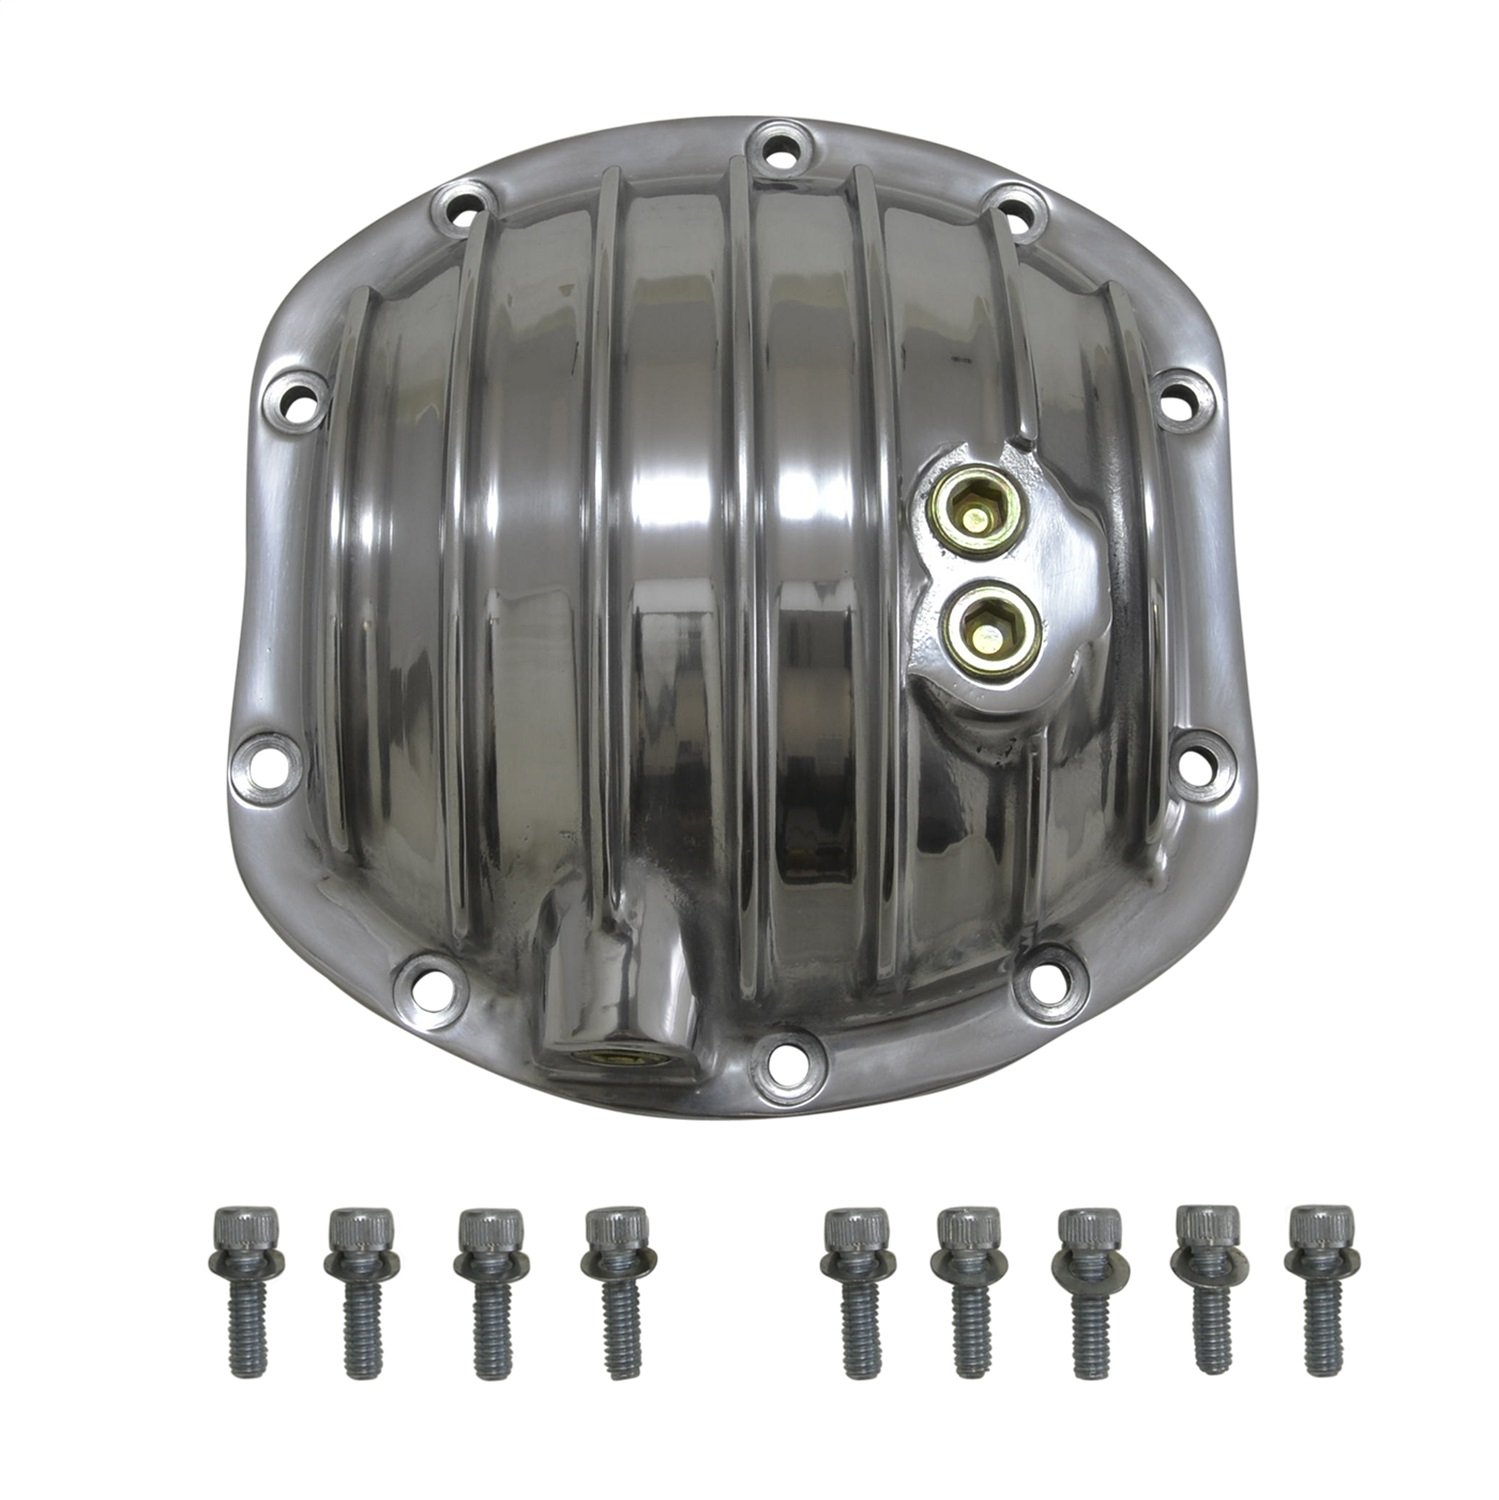 Yukon Gear & Axle (YP C2-D30-STD) Polished Aluminum Replacement Cover for Dana 30 Standard Rotation Differential